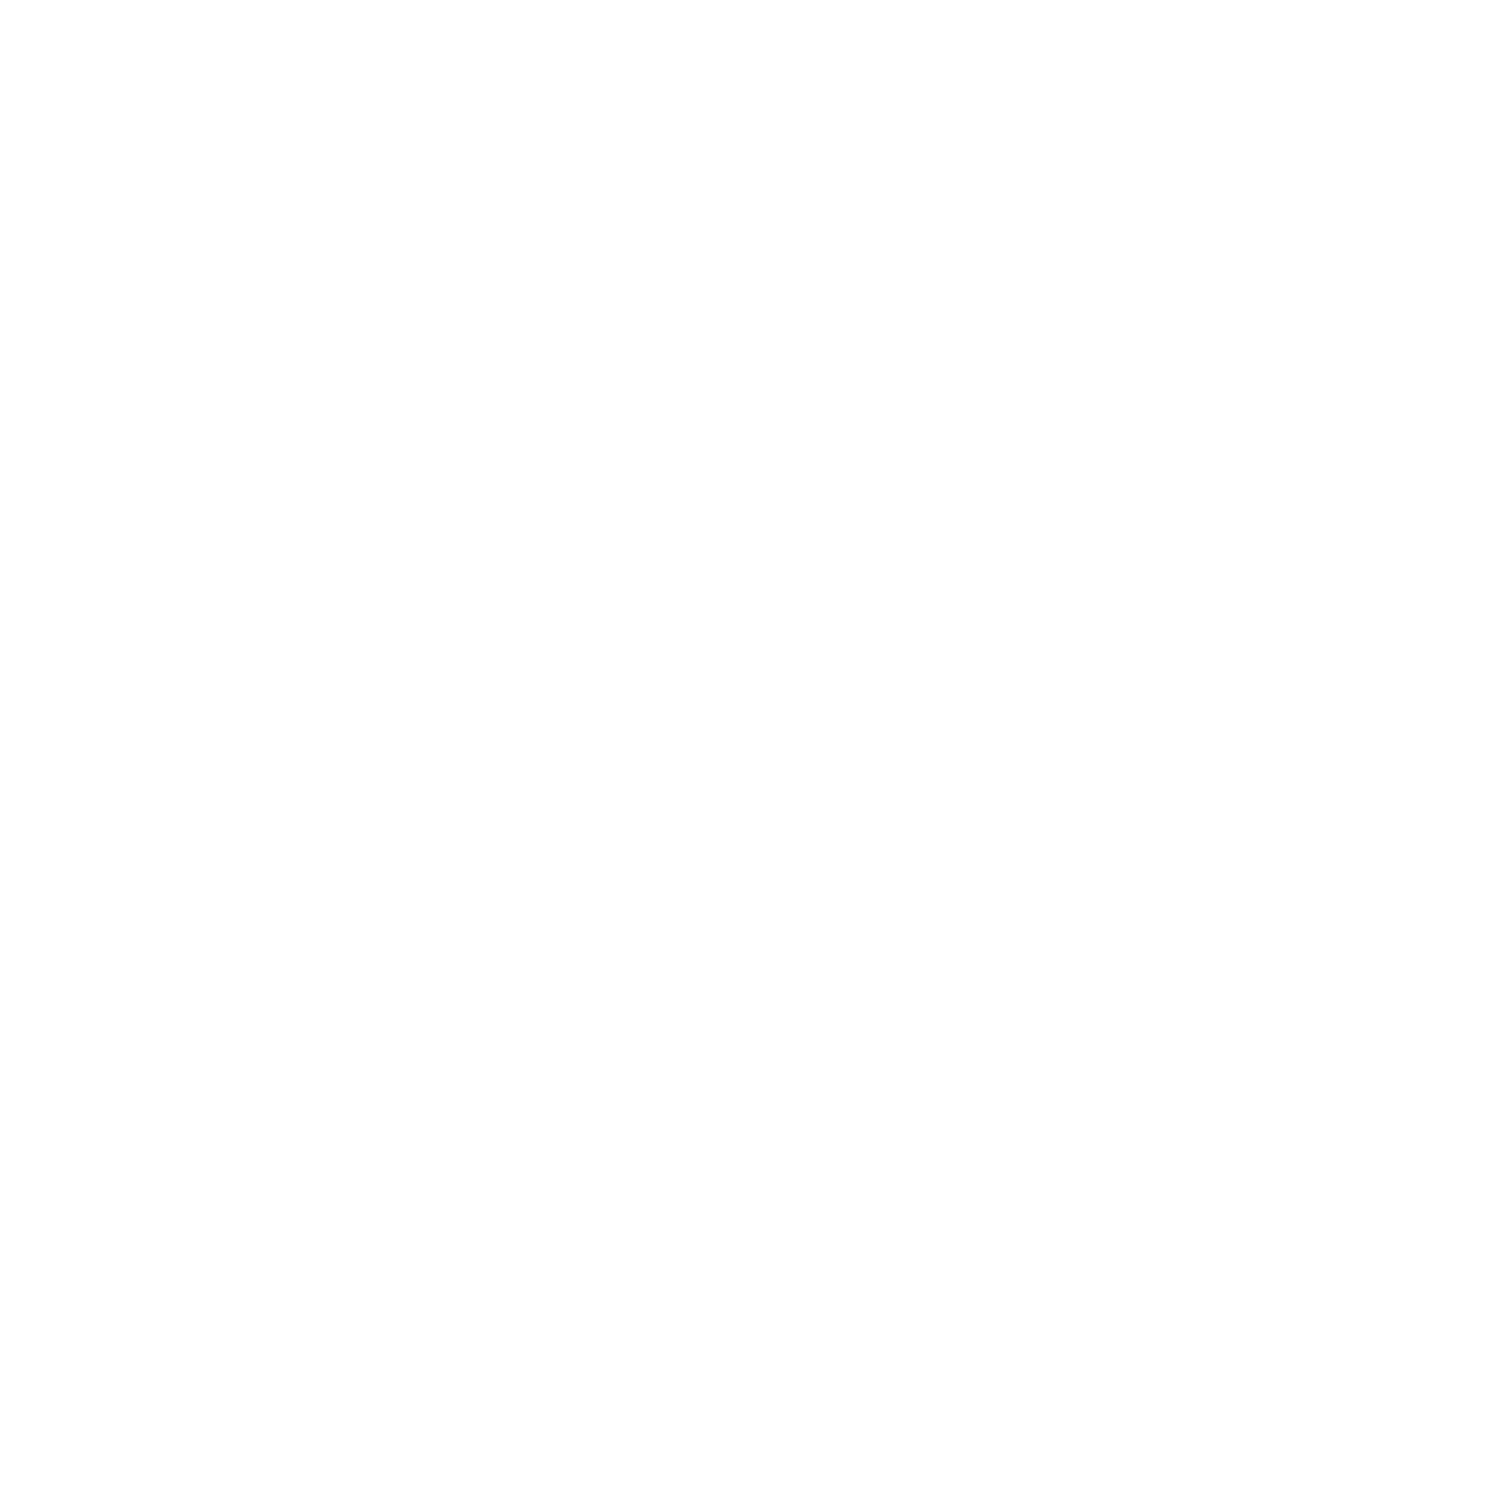 The Performance Pantry